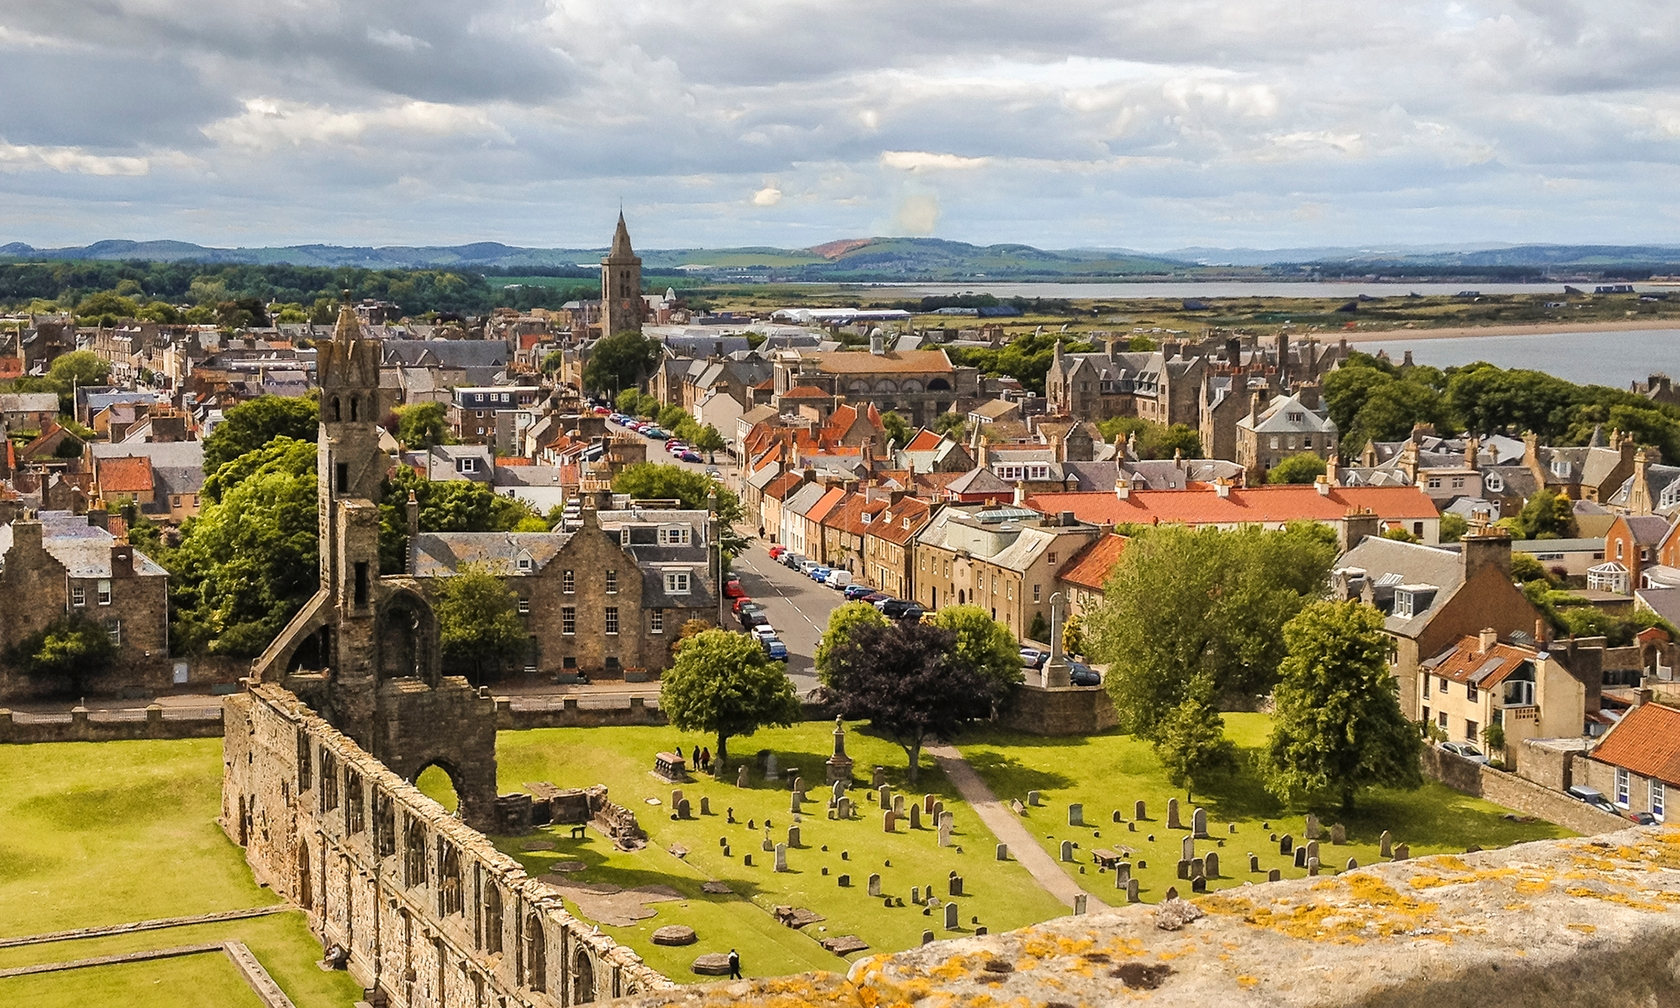 Holiday rental apartments in St Andrews